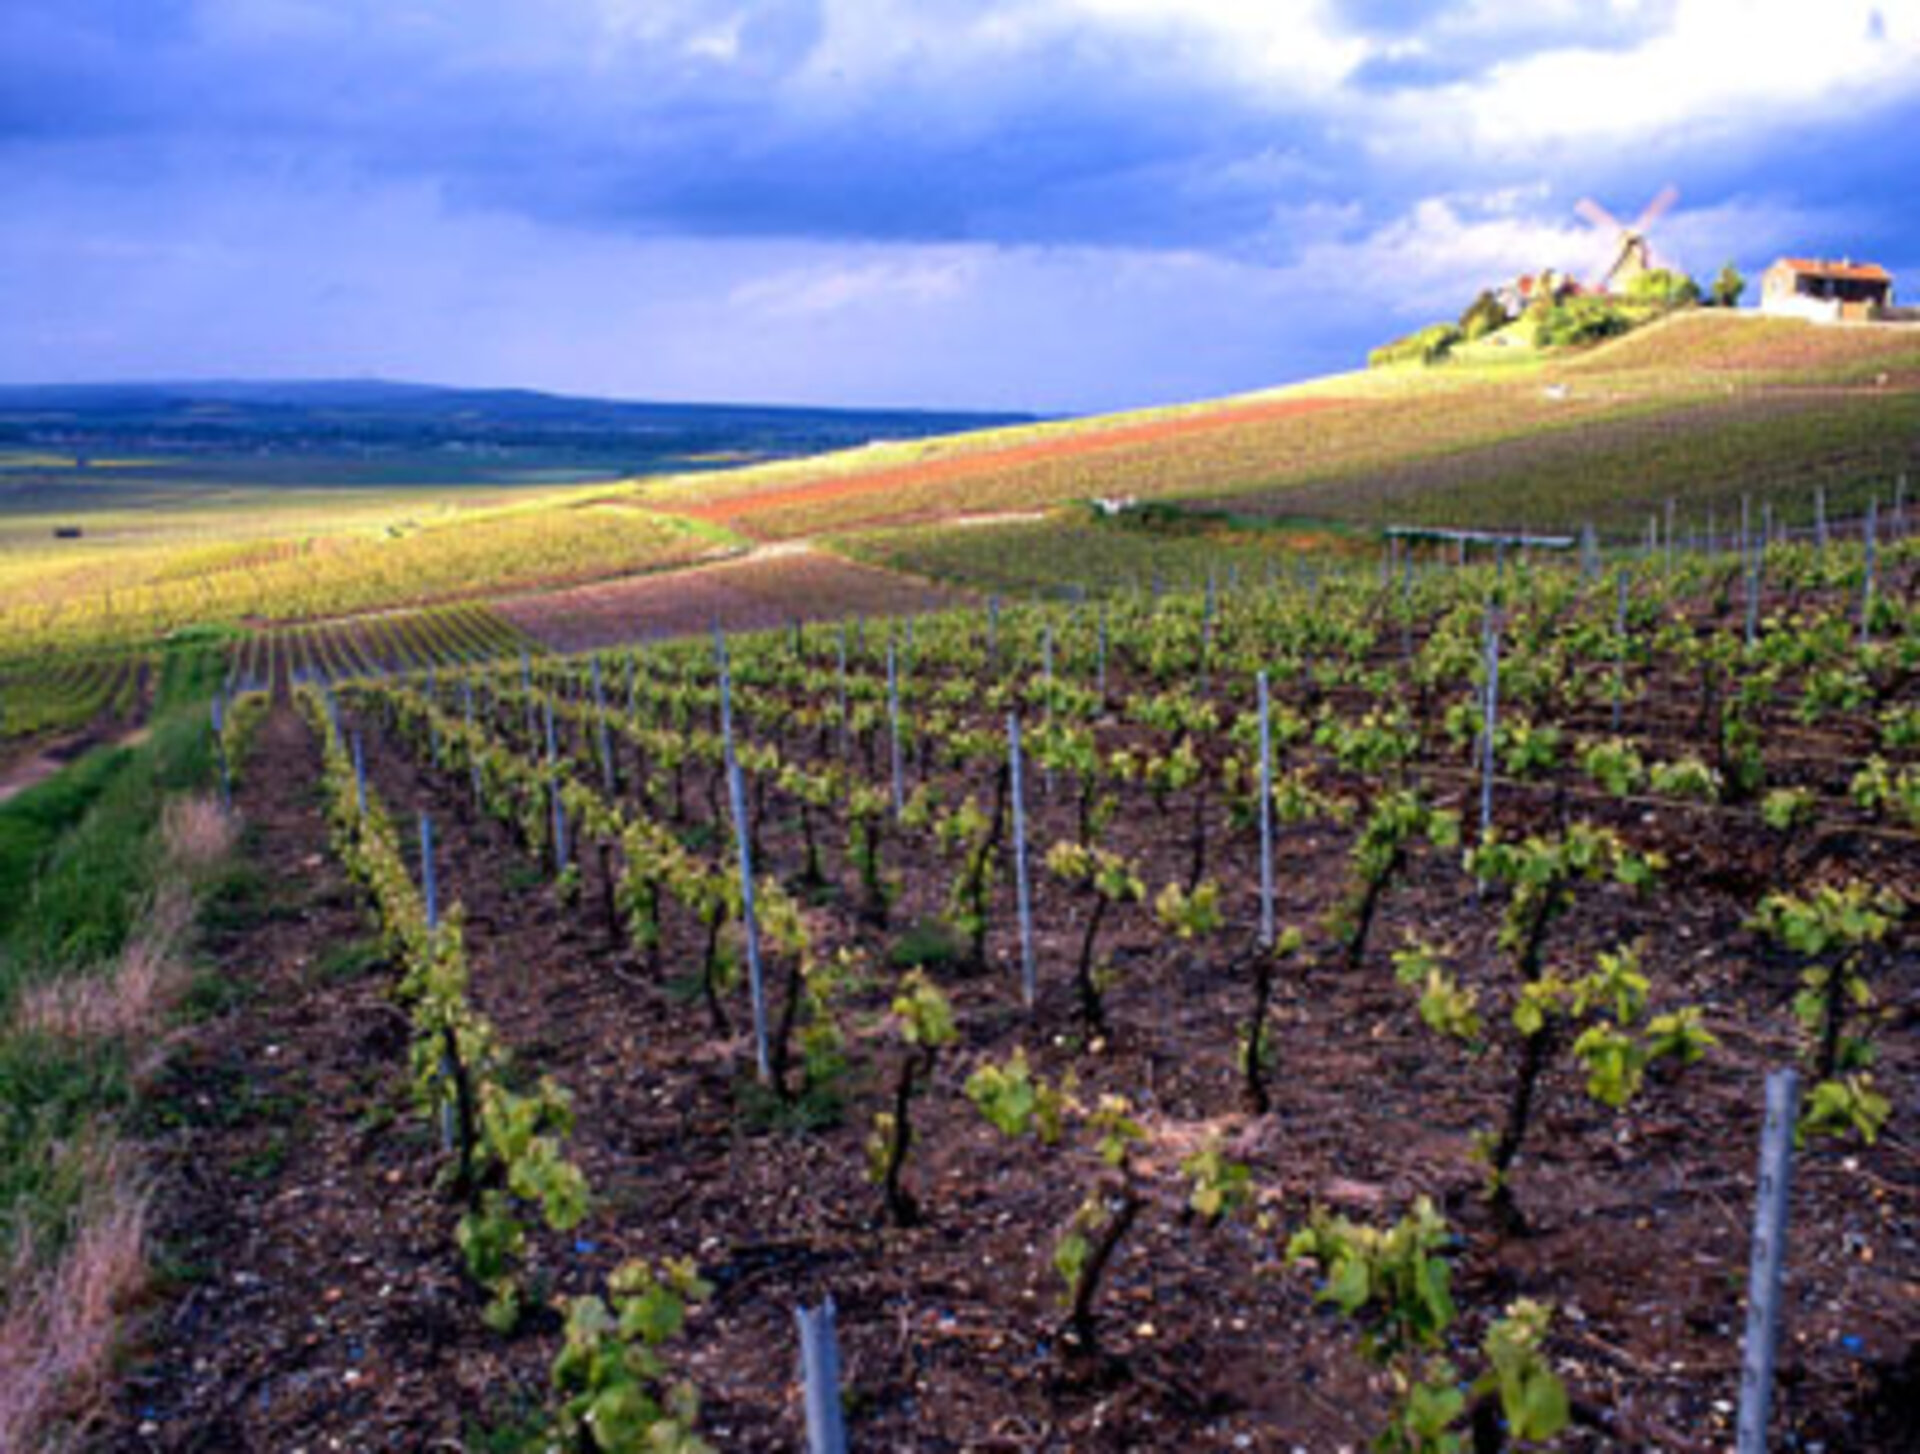 Europe's vineyards will be mapped by satellite